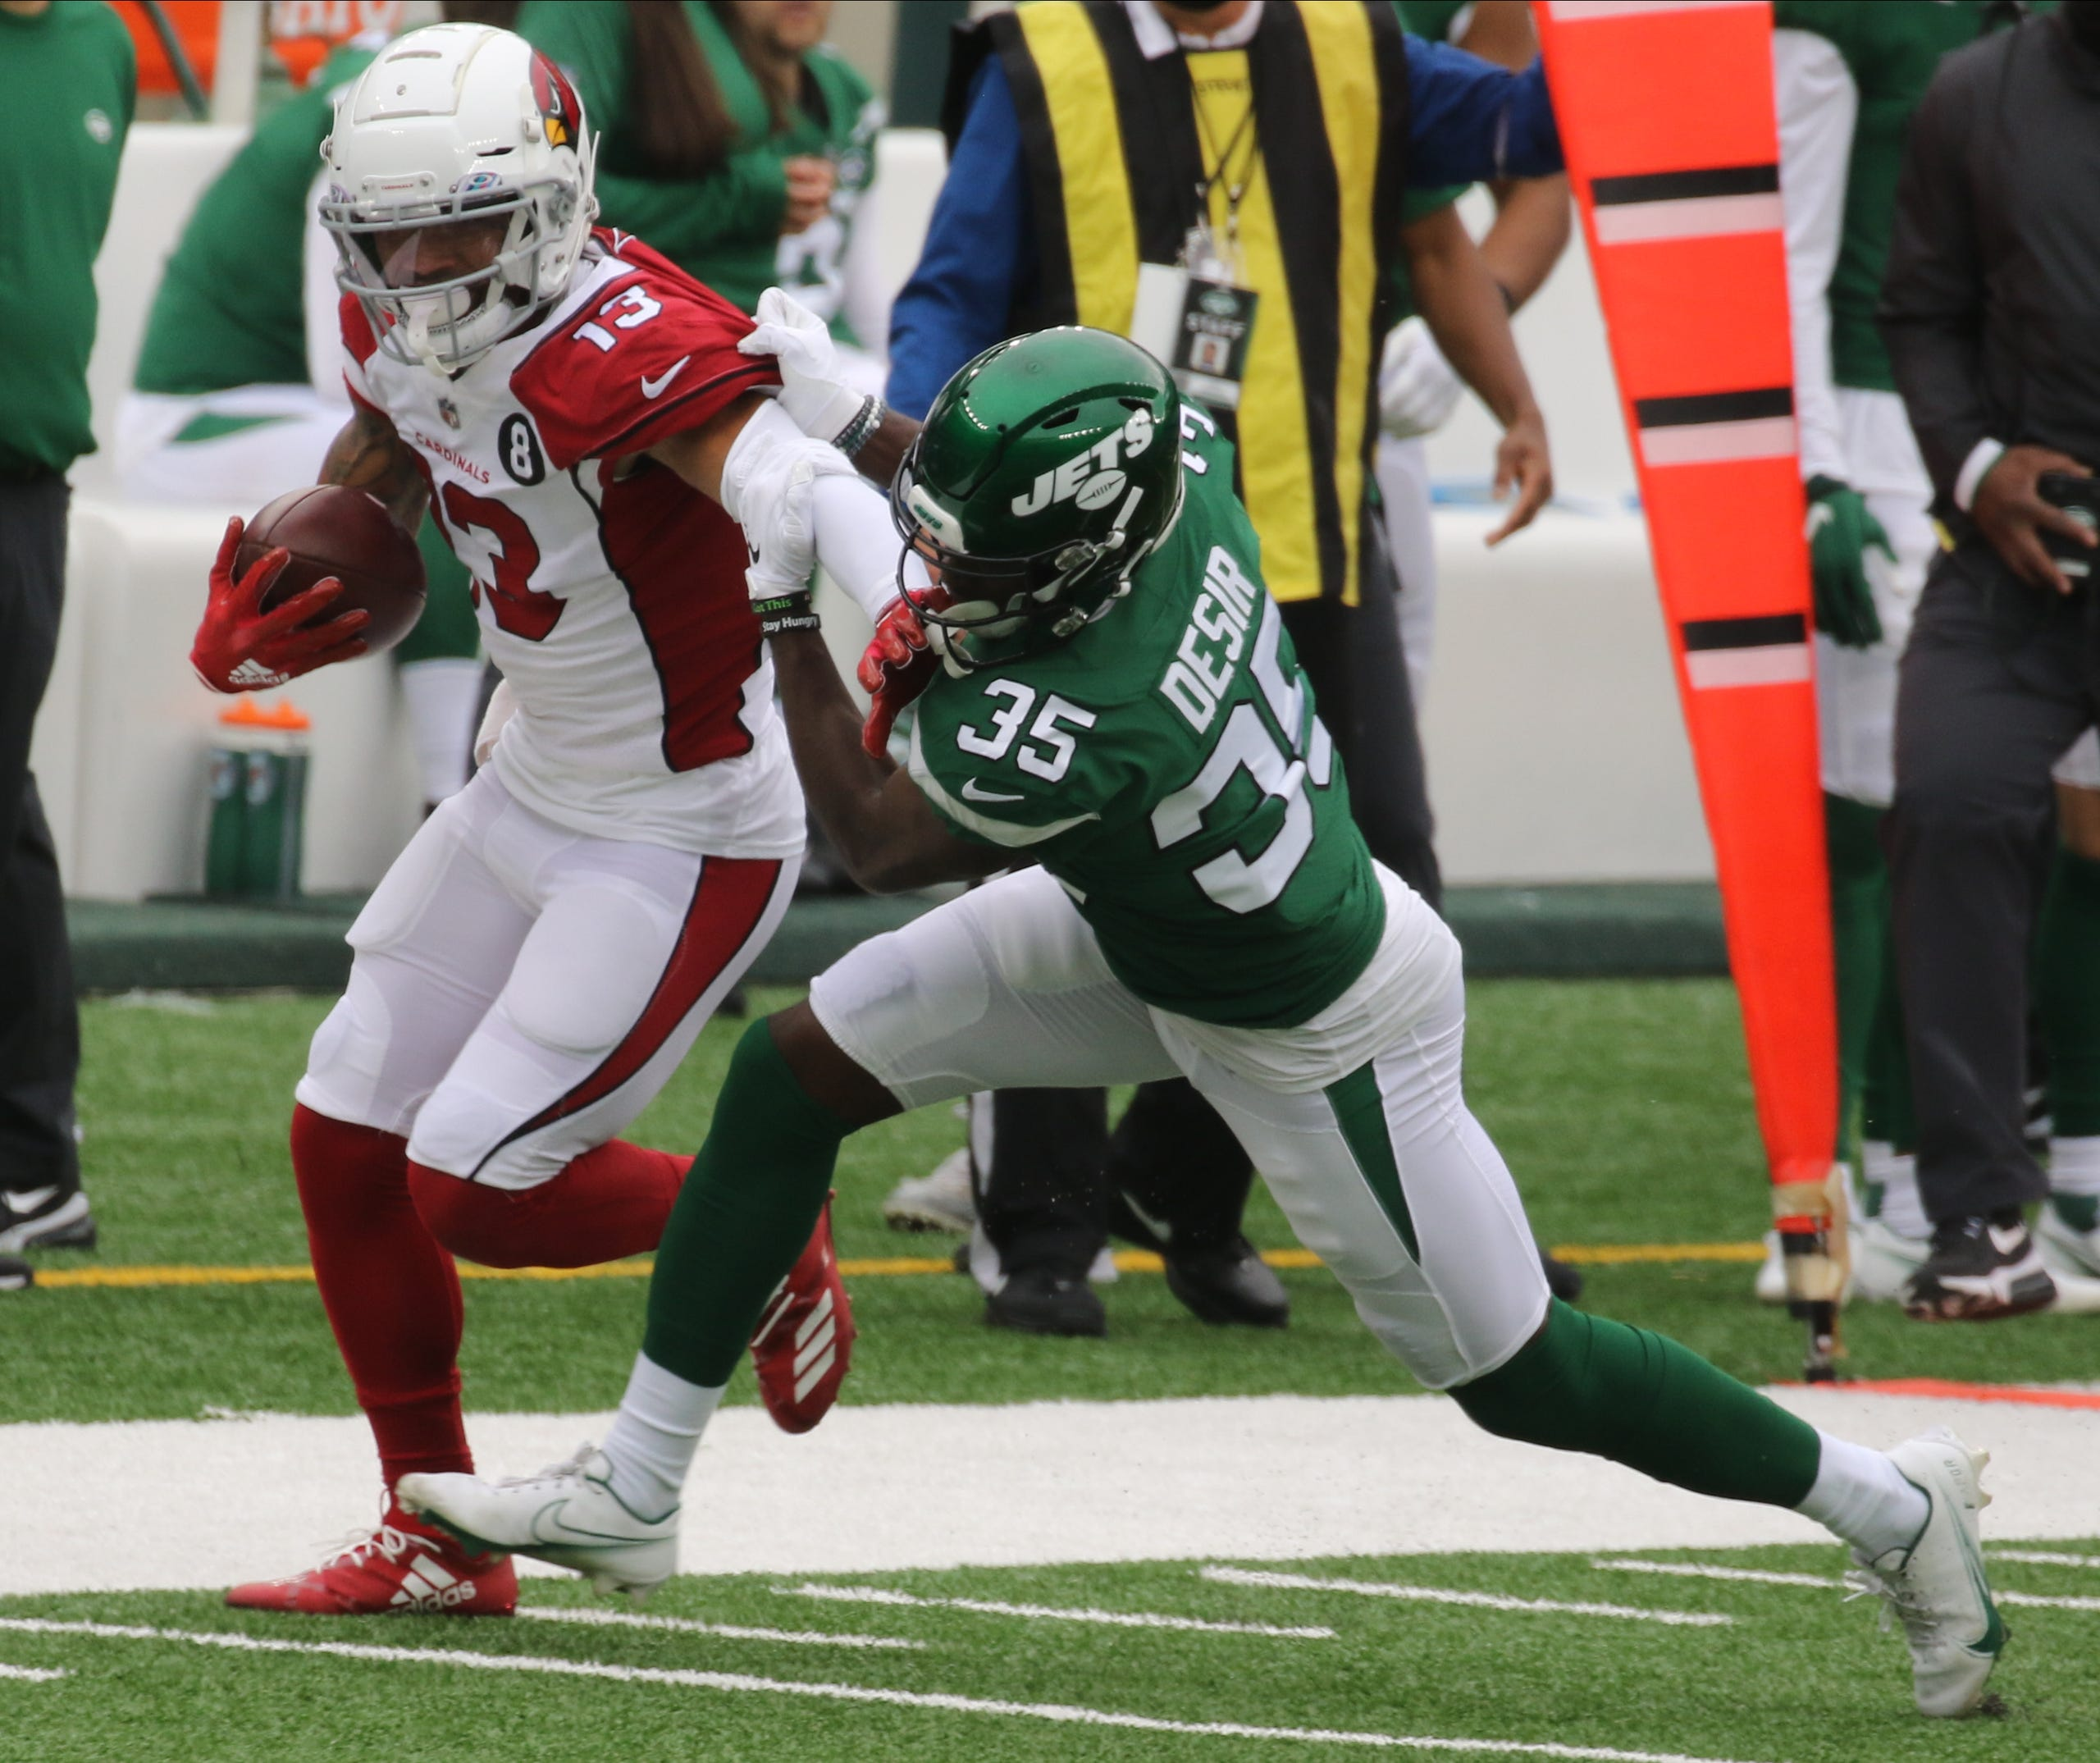 Arizona Cardinals vs NY Jets at MetLife Stadium